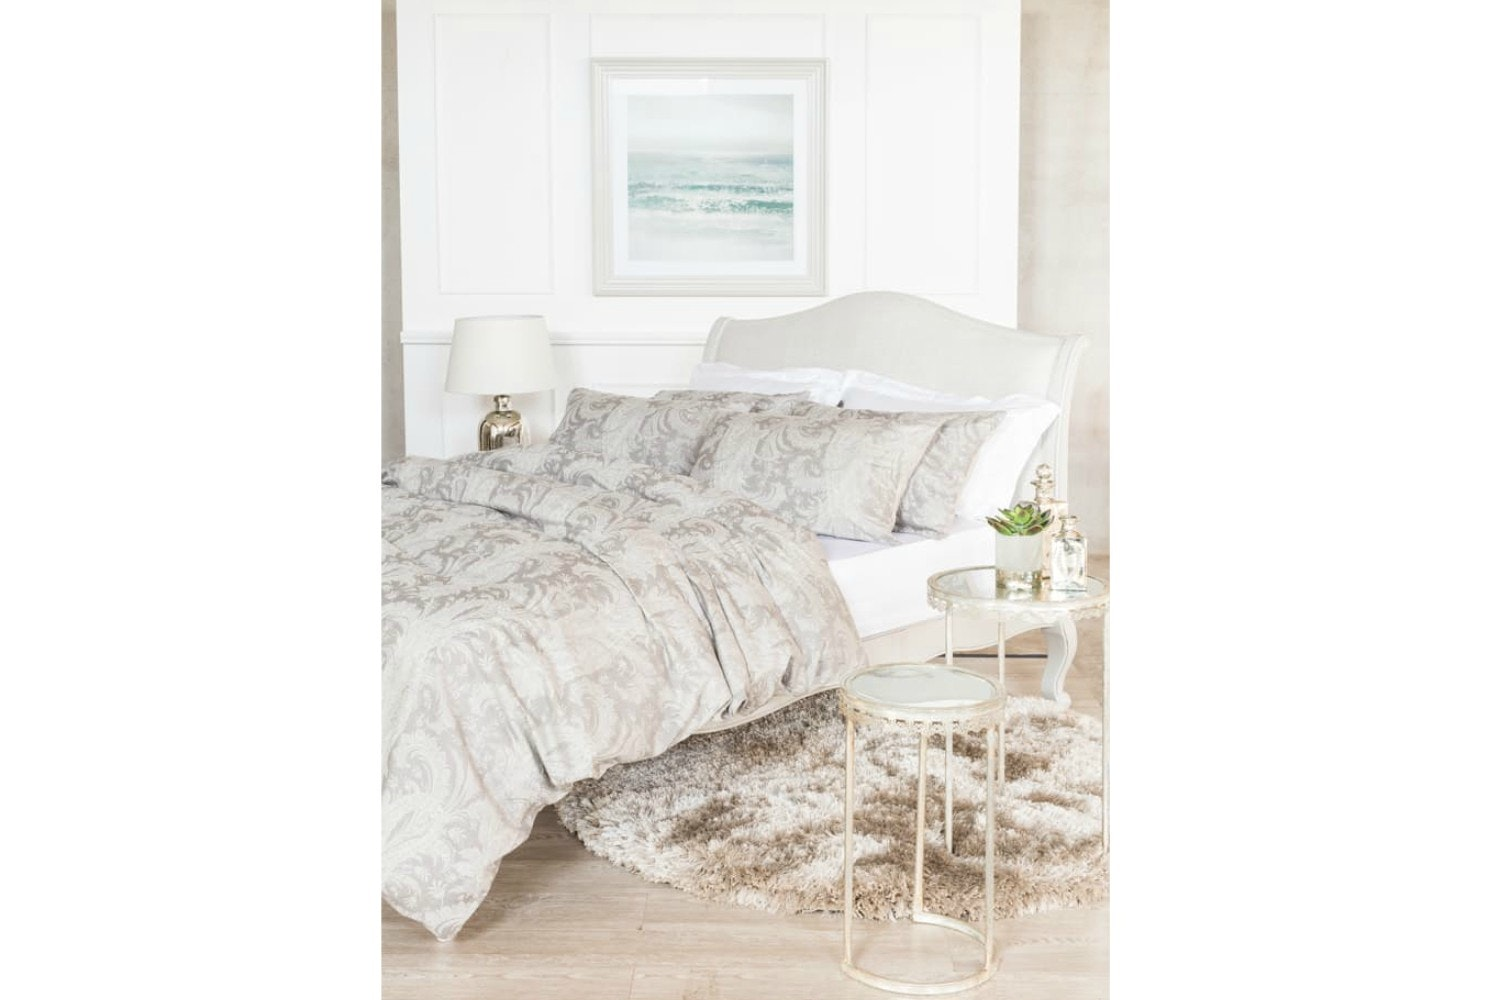 The Linen Room Damask Duvet Cover Set | Single